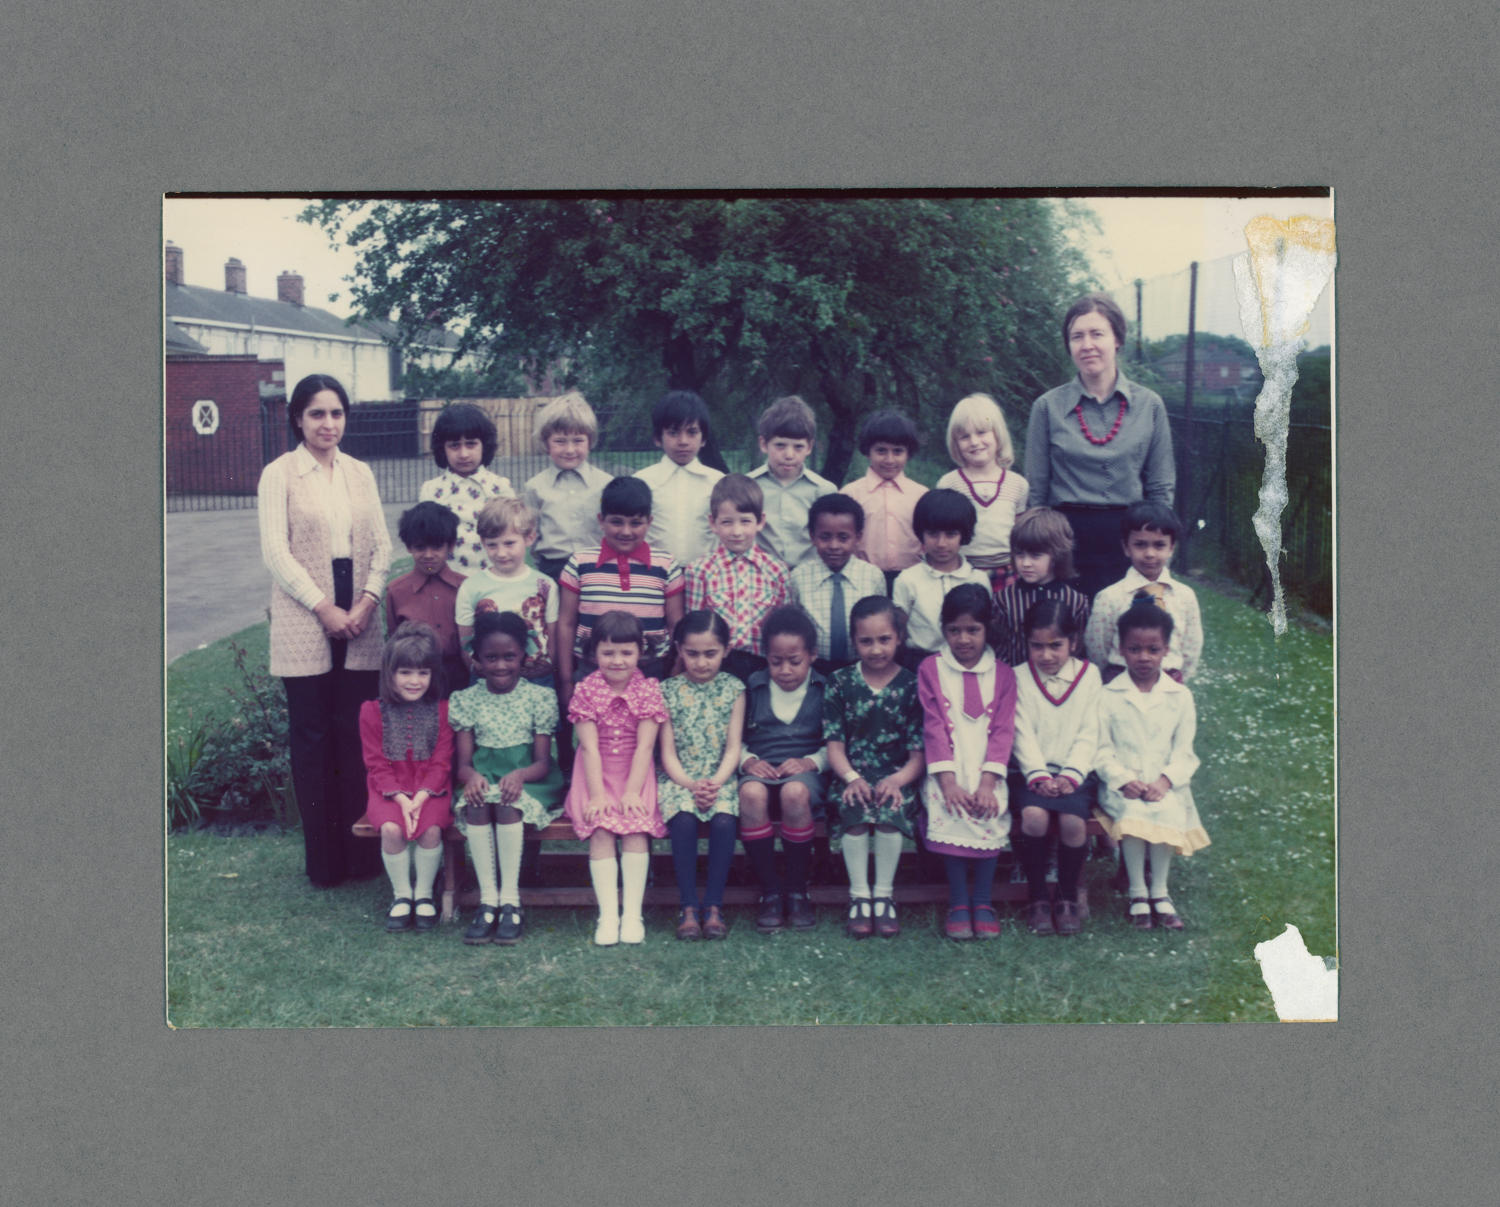 Ettingshall School c.1978